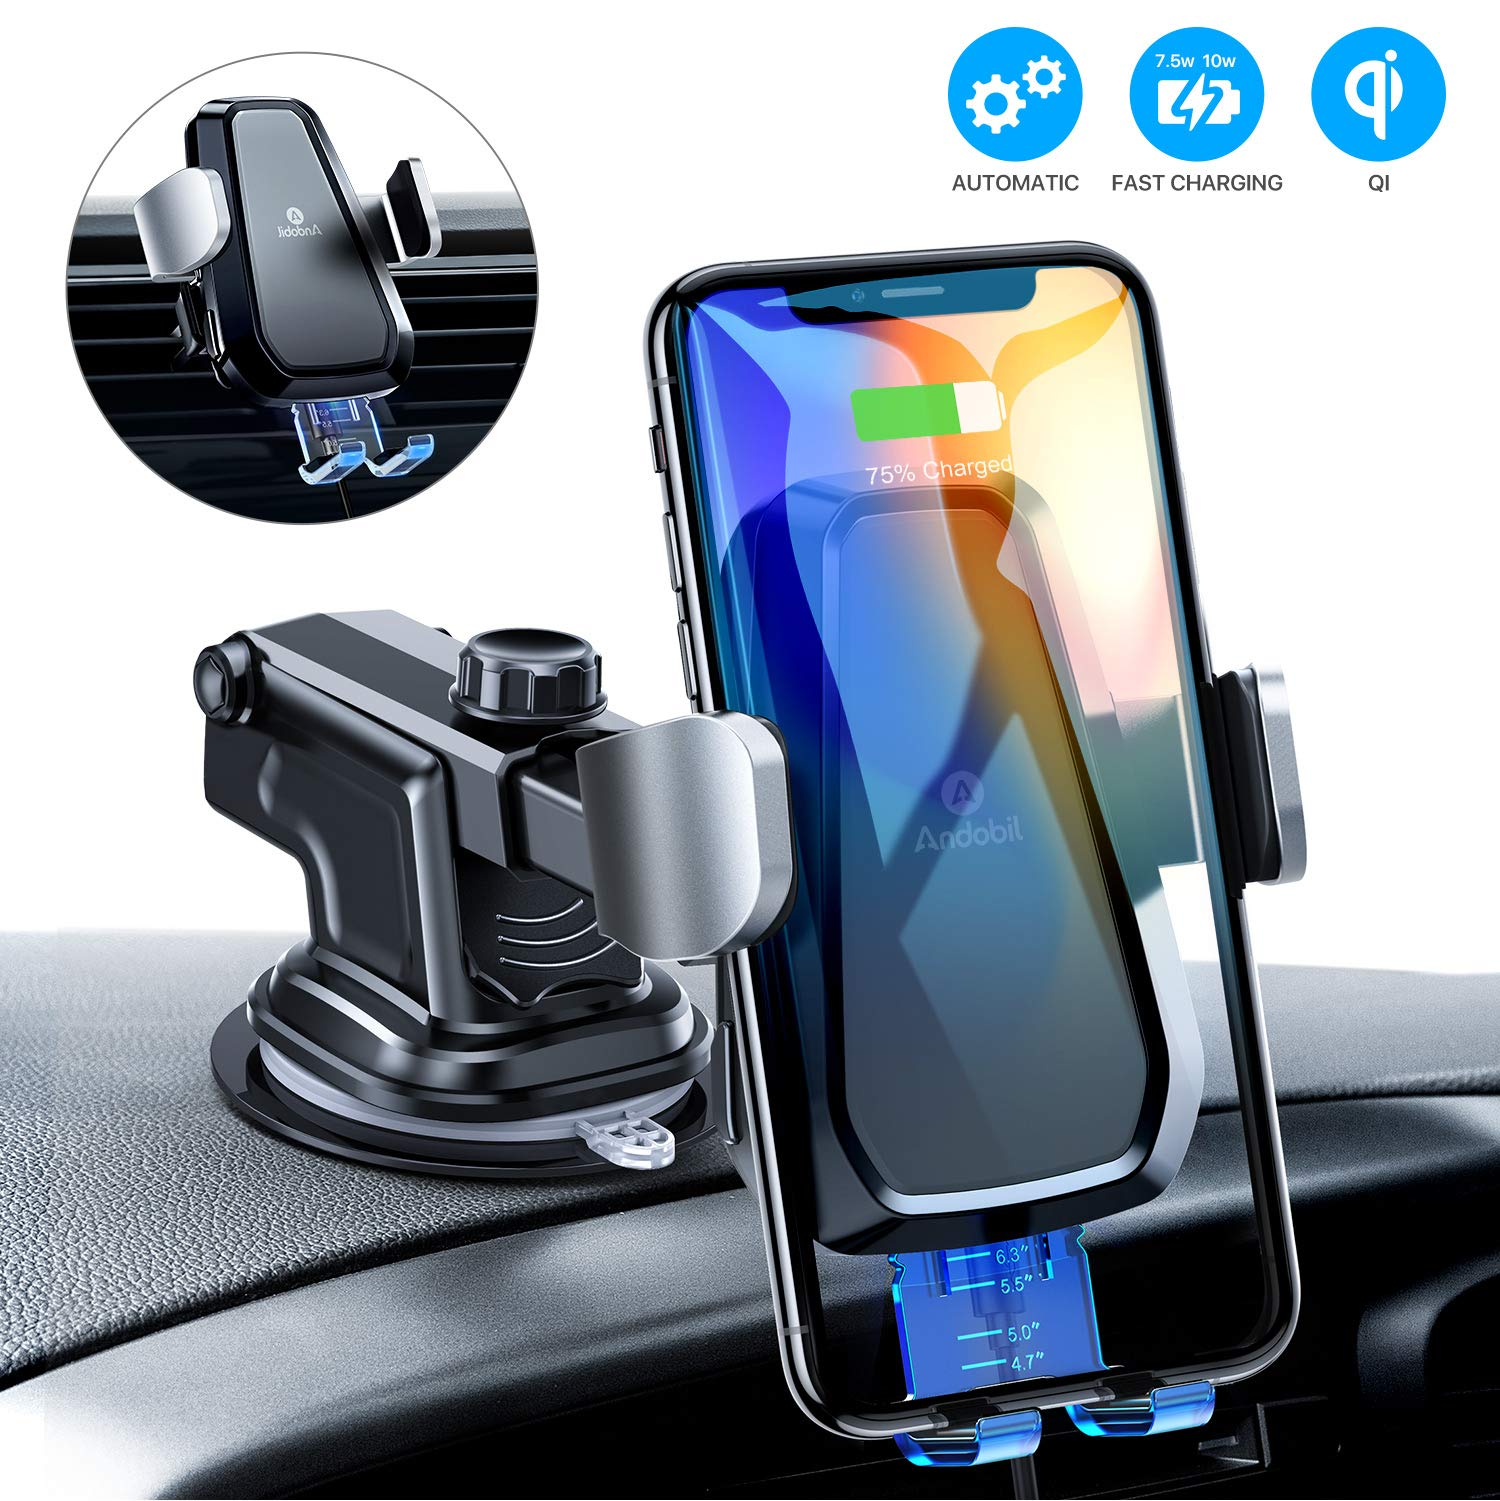 andobil Wireless Car Charger Mount, Auto Clamping Air Vent Dashboard Windshield Phone Holder Compatible iPhone 11/11 Pro/ 11 Pro Max /Xs Max/Xs/XR/X/8+/8, Samsung S10+/S10/S9+/S9/S8+/S8 by andobil